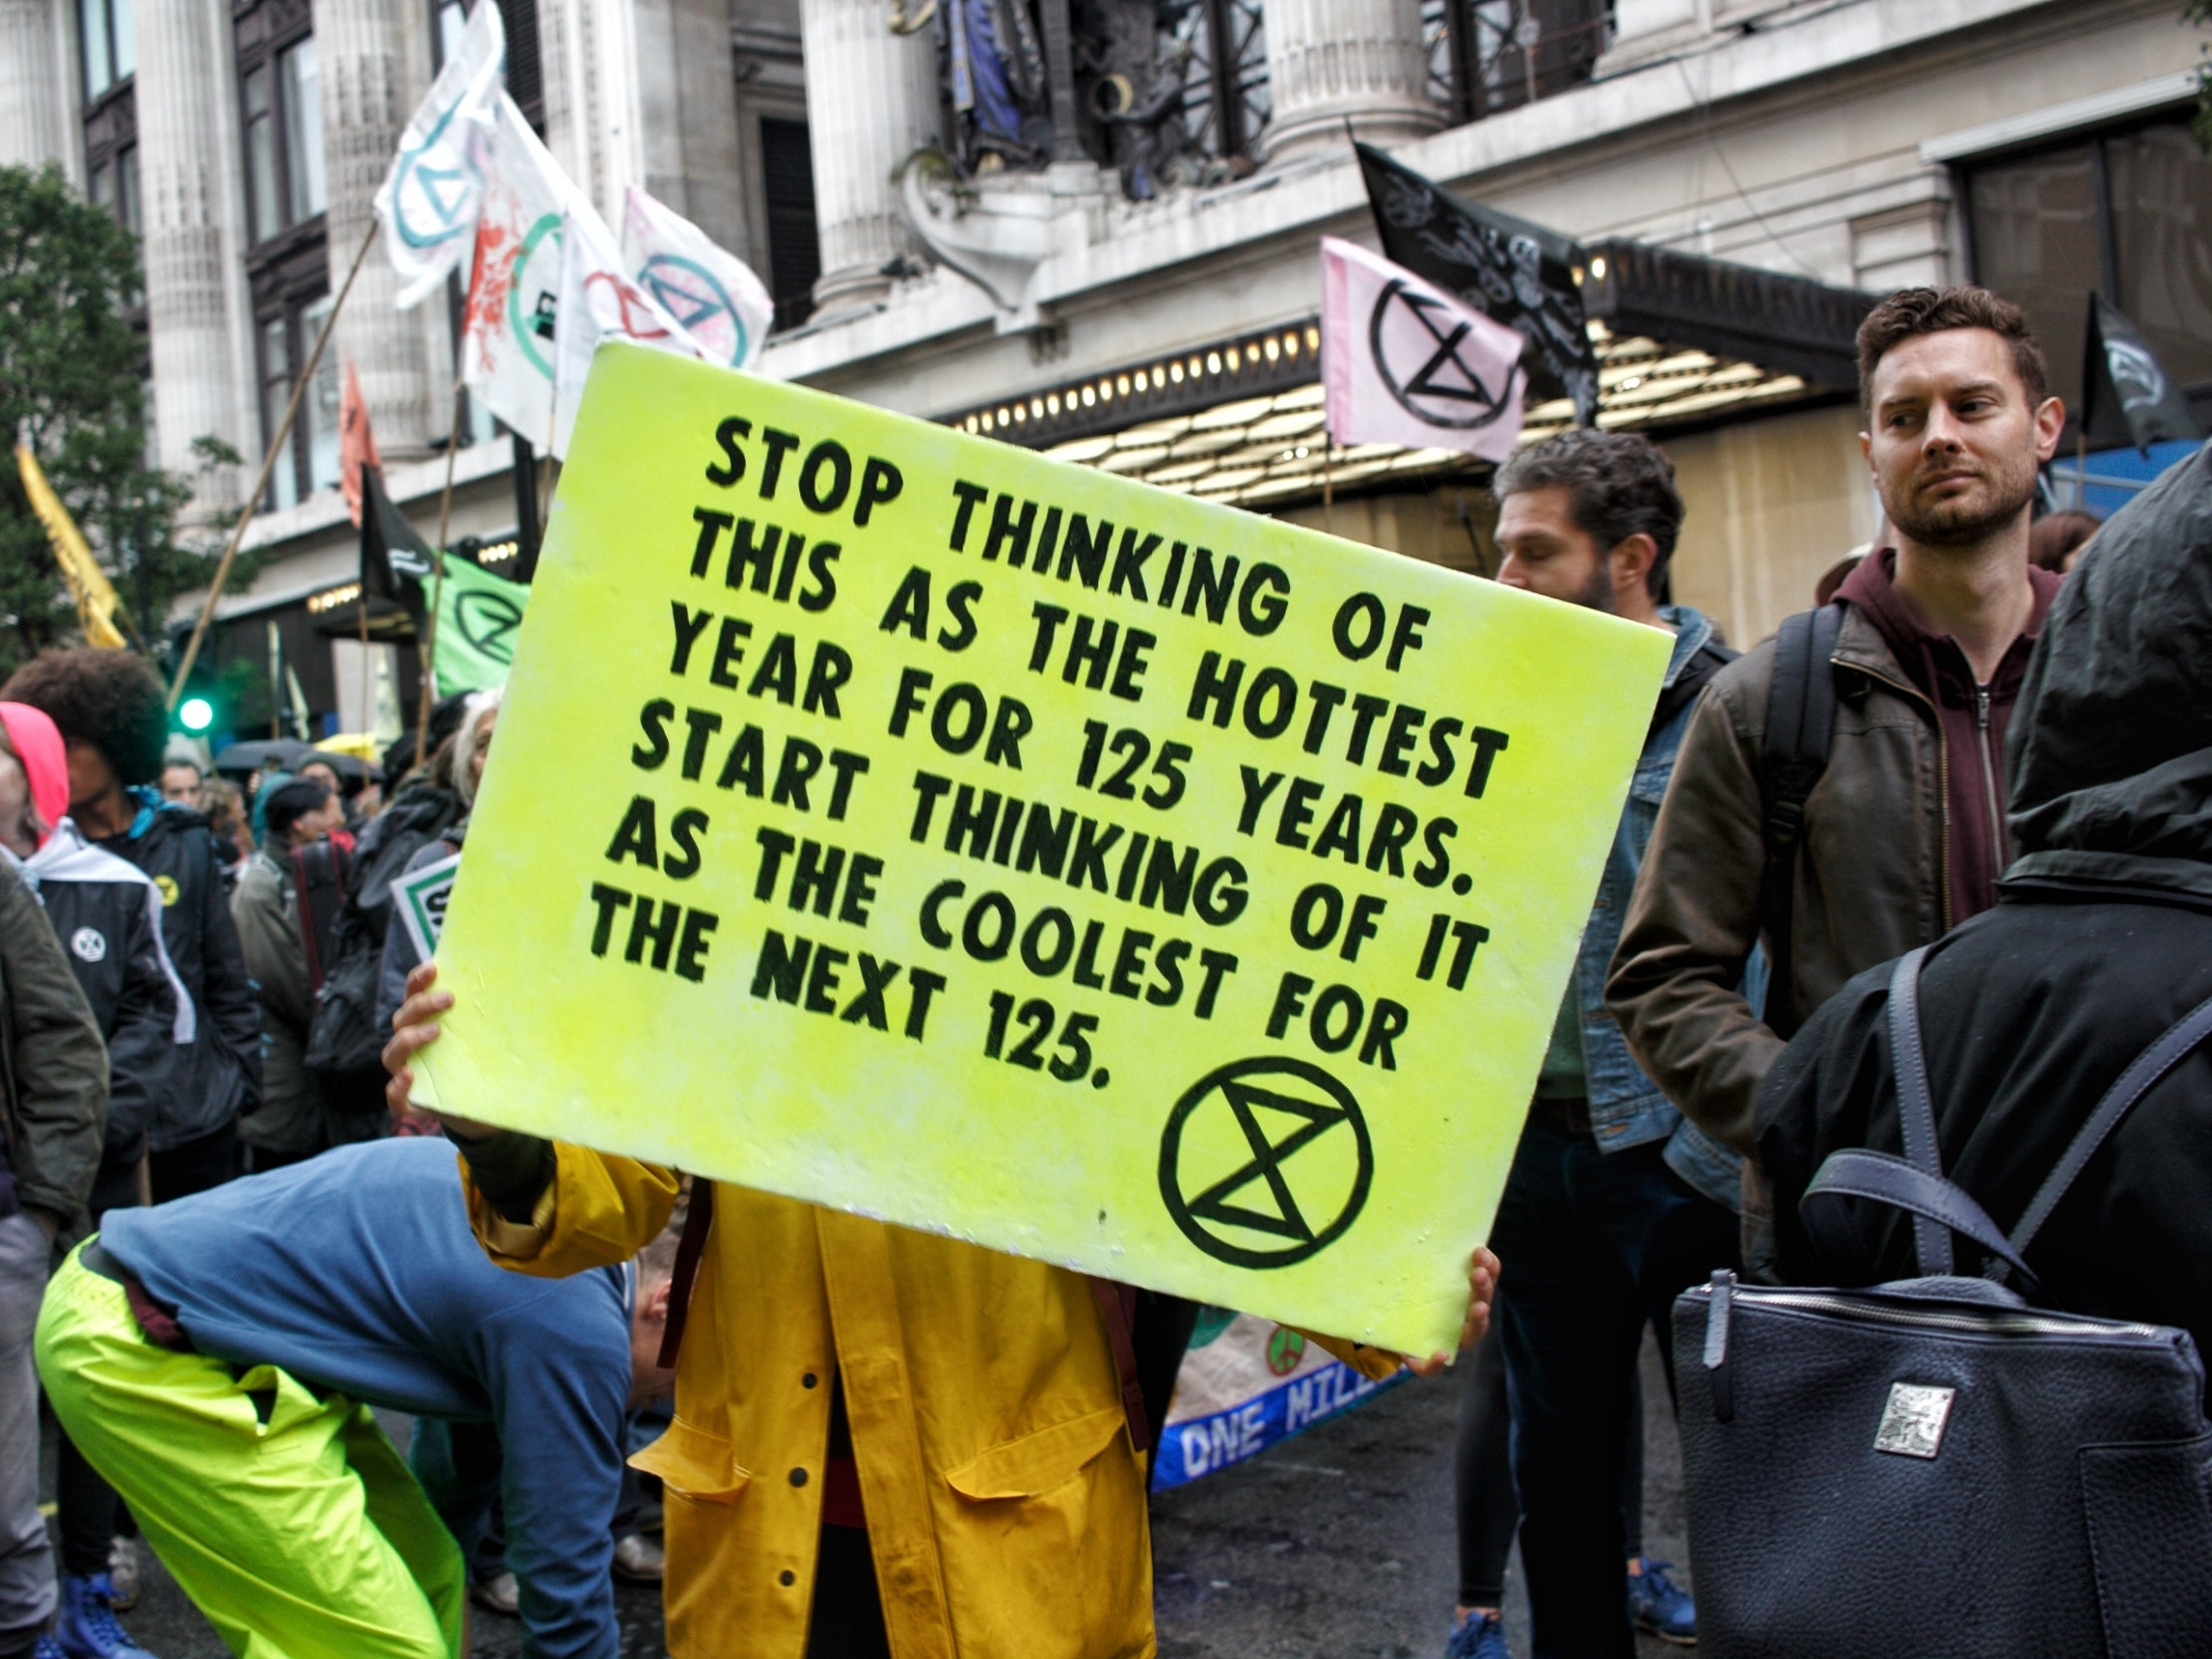 MPs like Andrea Leadsom say they want to save the planet – they could start by listening to climate change protesters